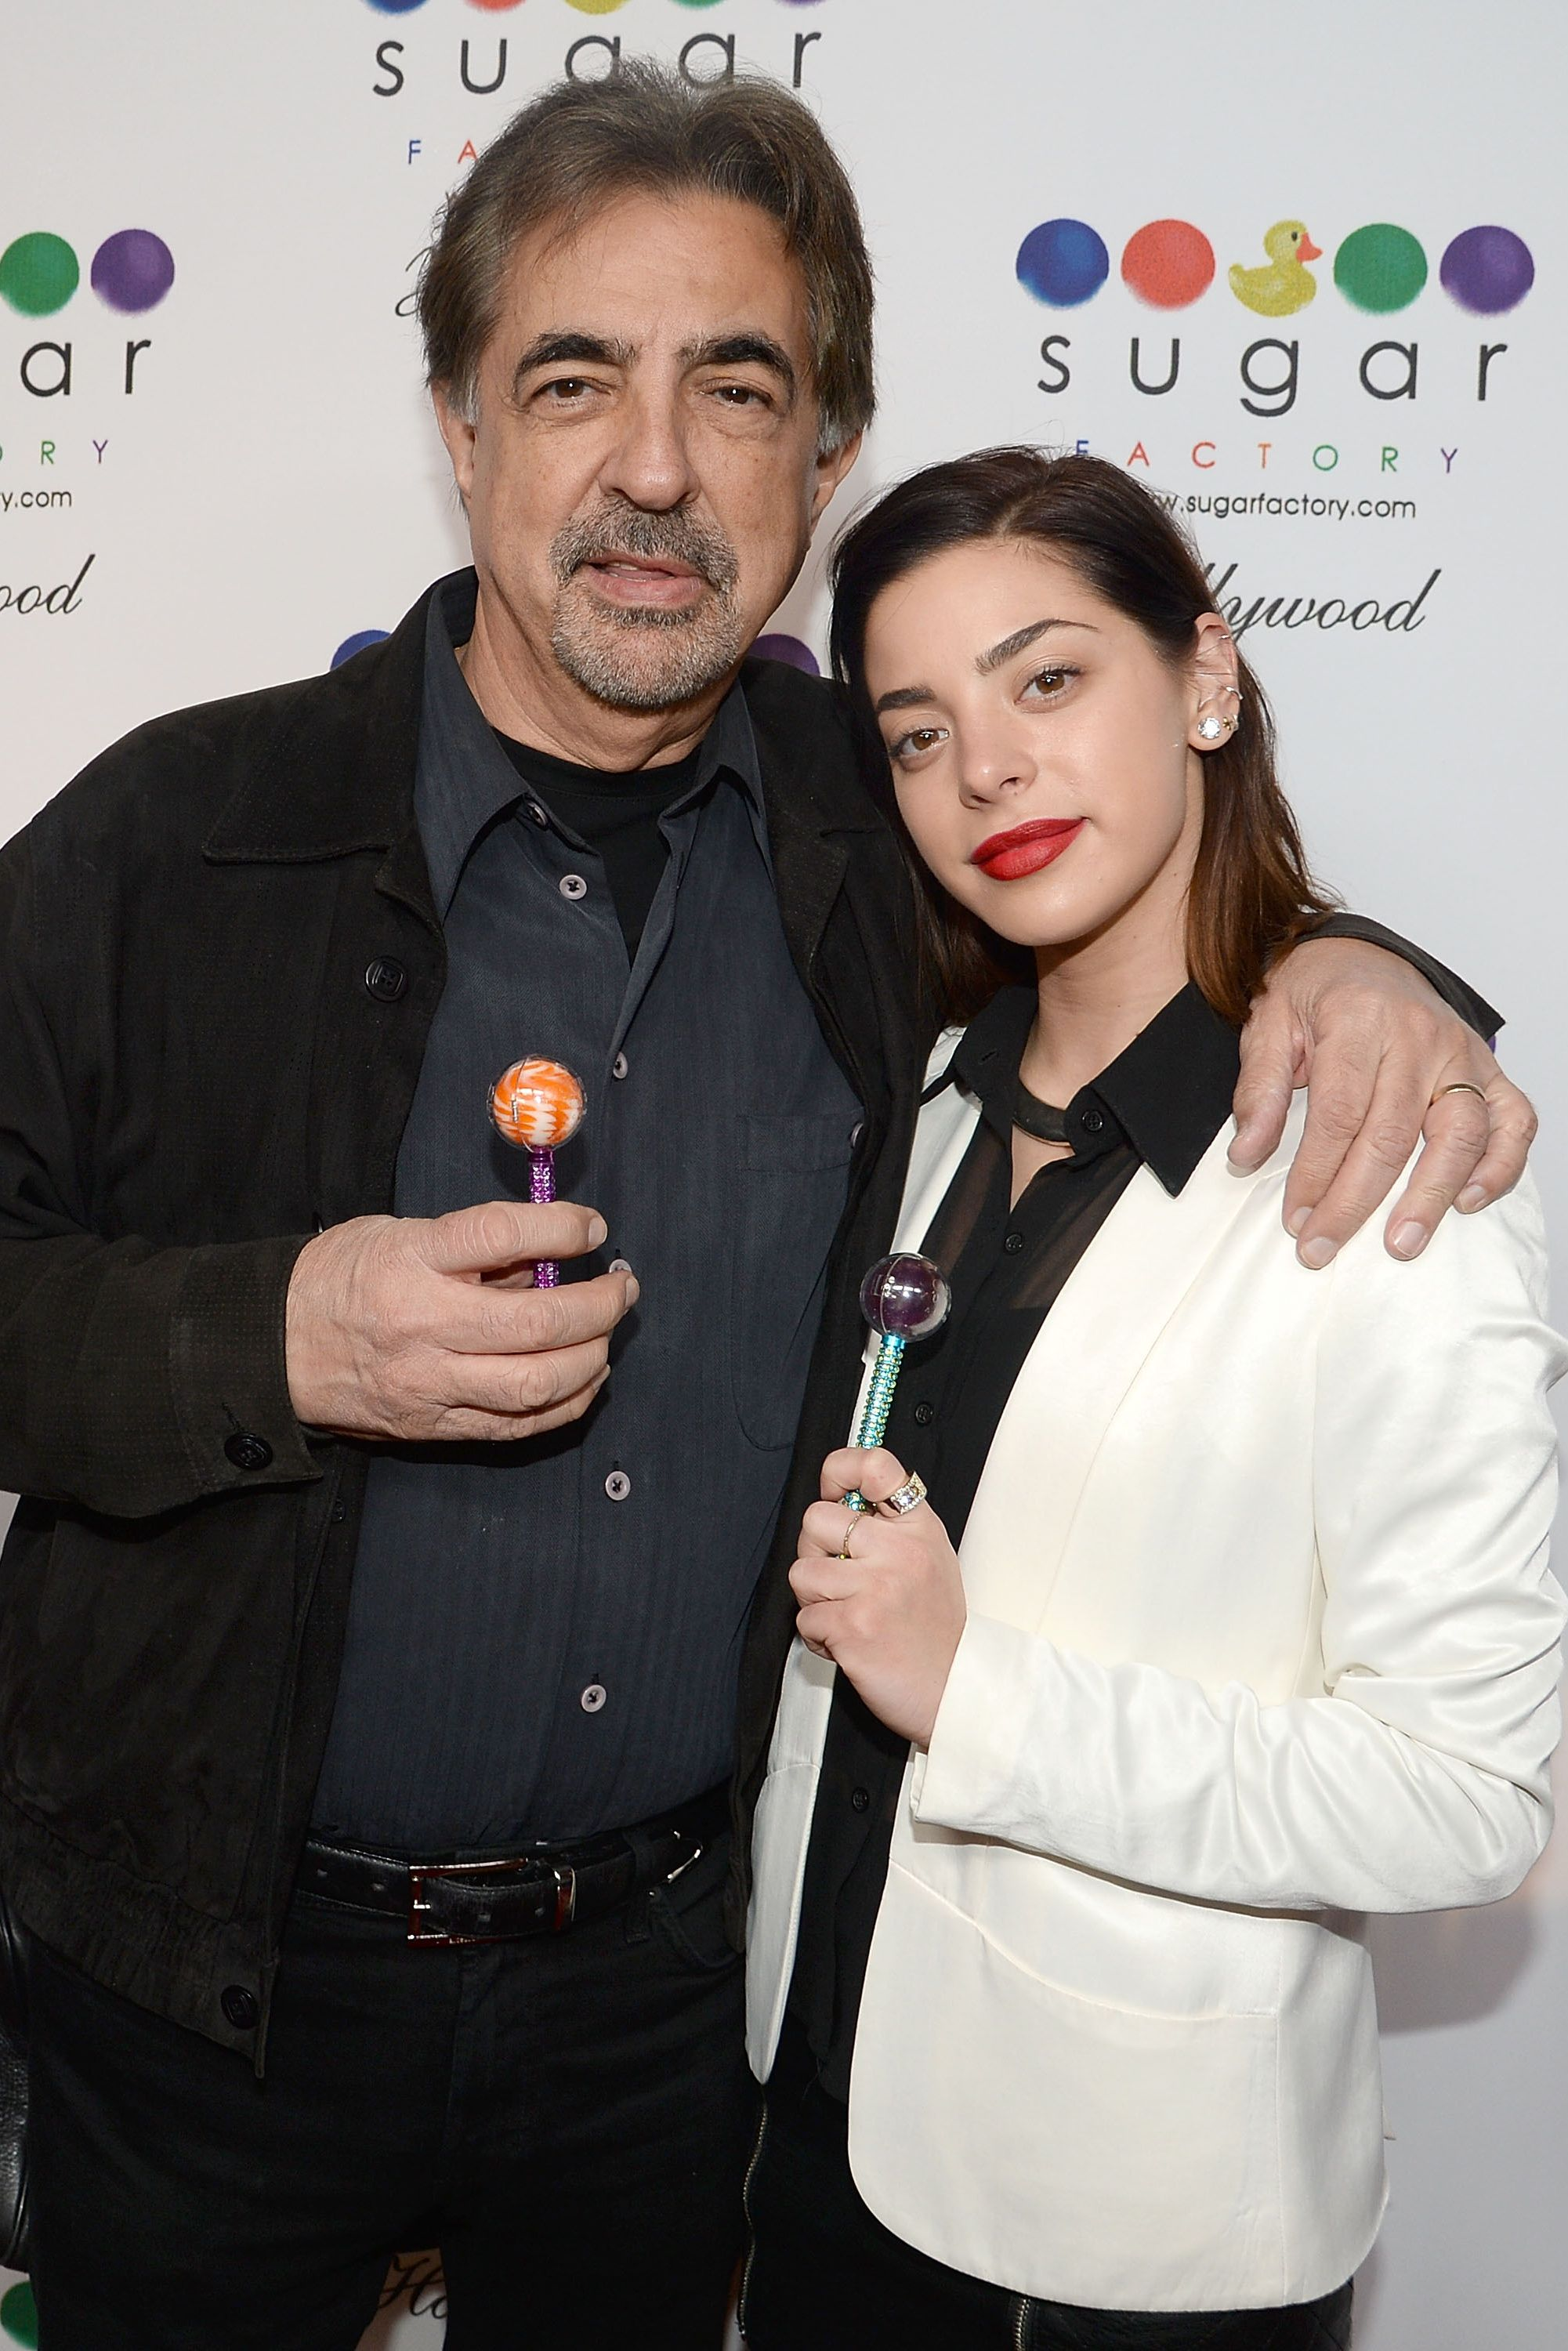 Actor Joe Mantegna's daughter Gia launched a successful acting career after she was awarded Miss Golden Globe 2011, appearing on the popular sitcom The Middle.